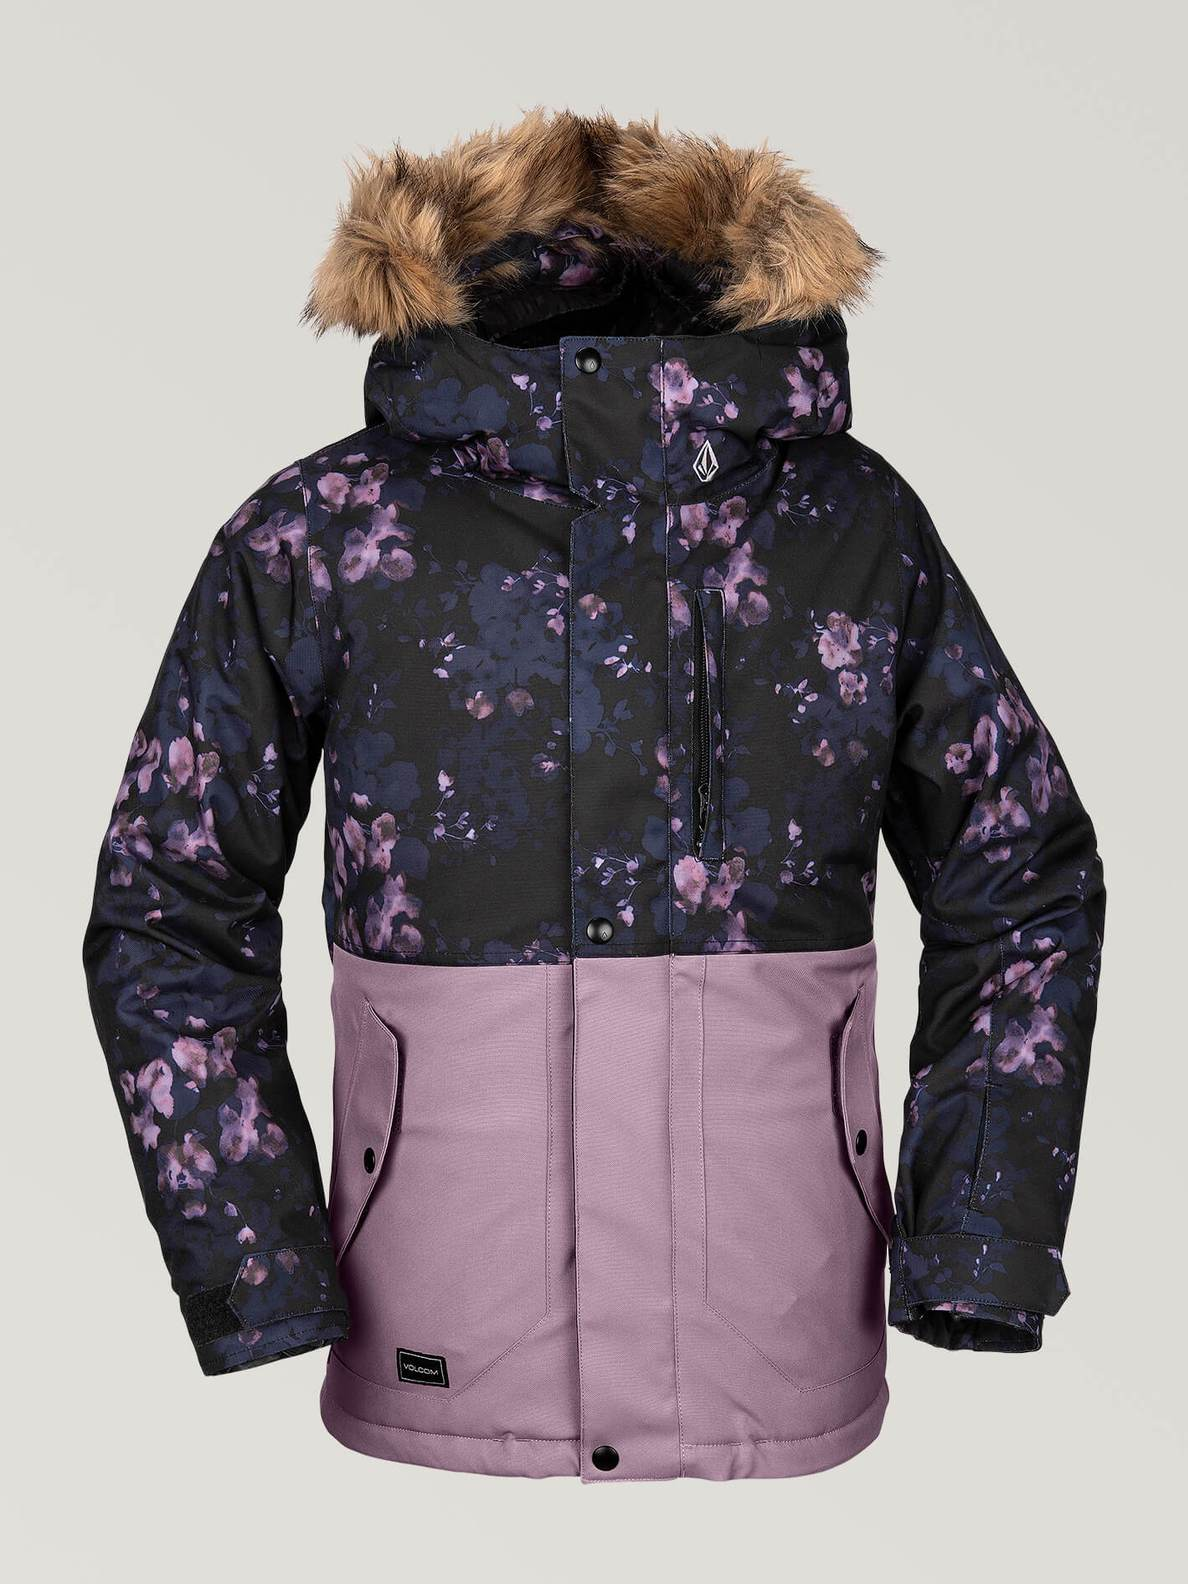 Girls Youth So Minty Insulated Jacket - Black Floral Print